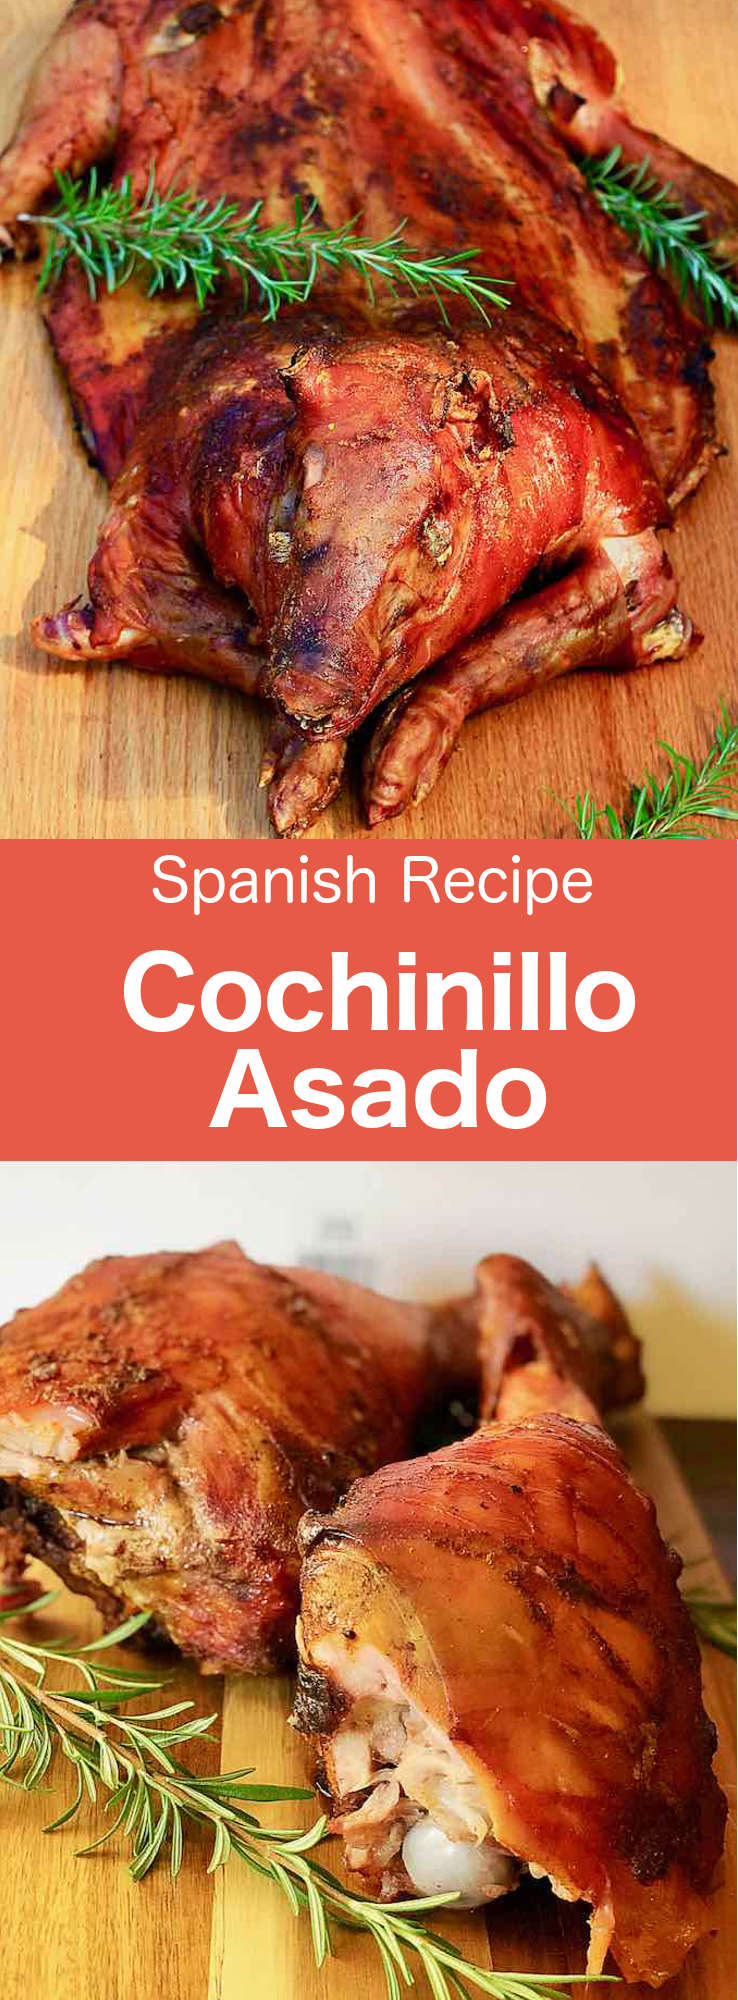 Cochinillo asado (tostón asado) or roast suckling pig, is one of the most typical dishes in the cuisine of Castilla, Spain. #SpanishCuisine #Spain #SpanishRecipe #SpanishFood #WorldCuisine #196flavors